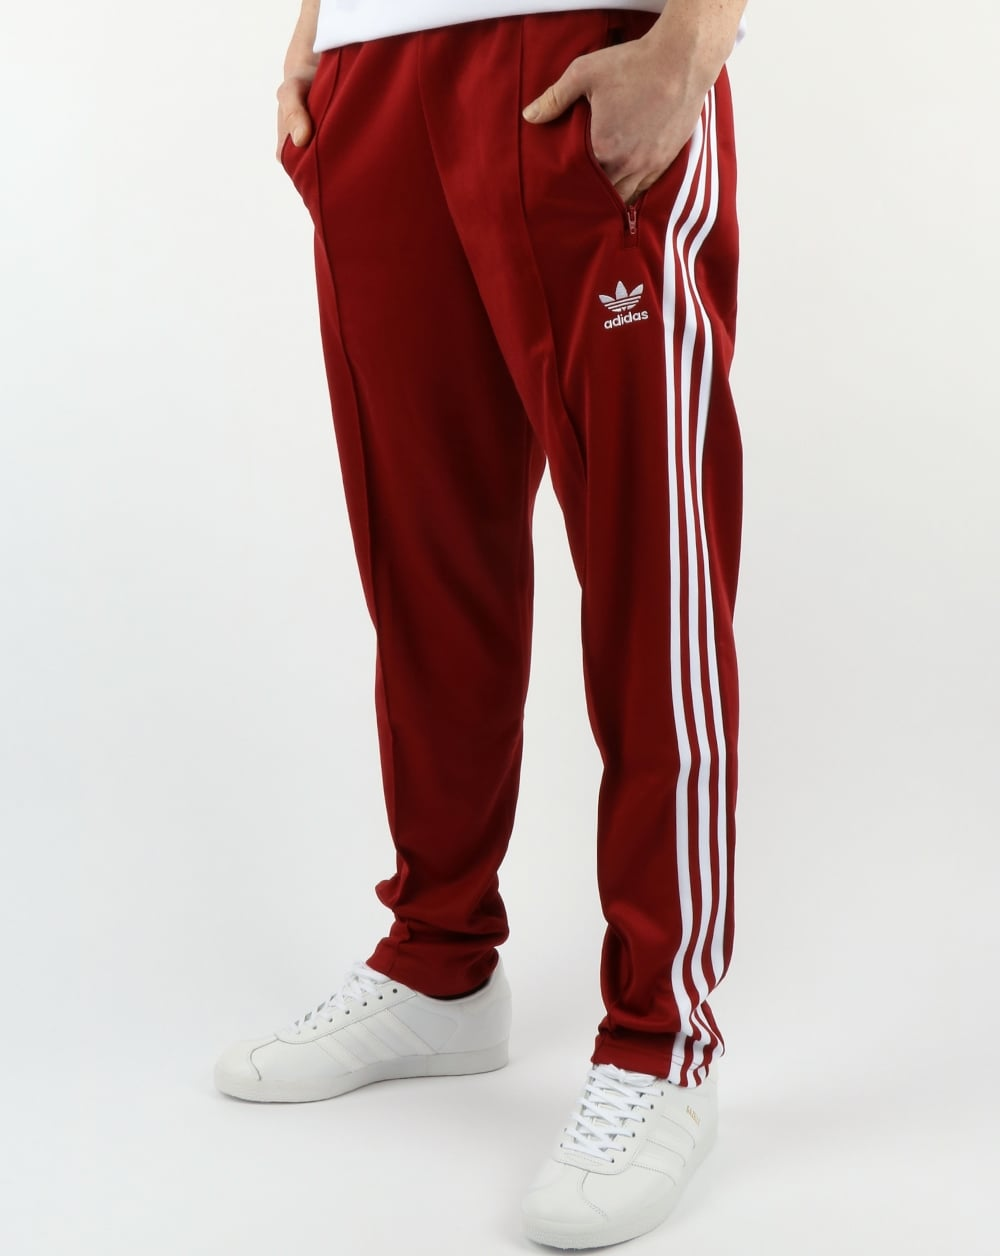 adidas superstar red with jeans